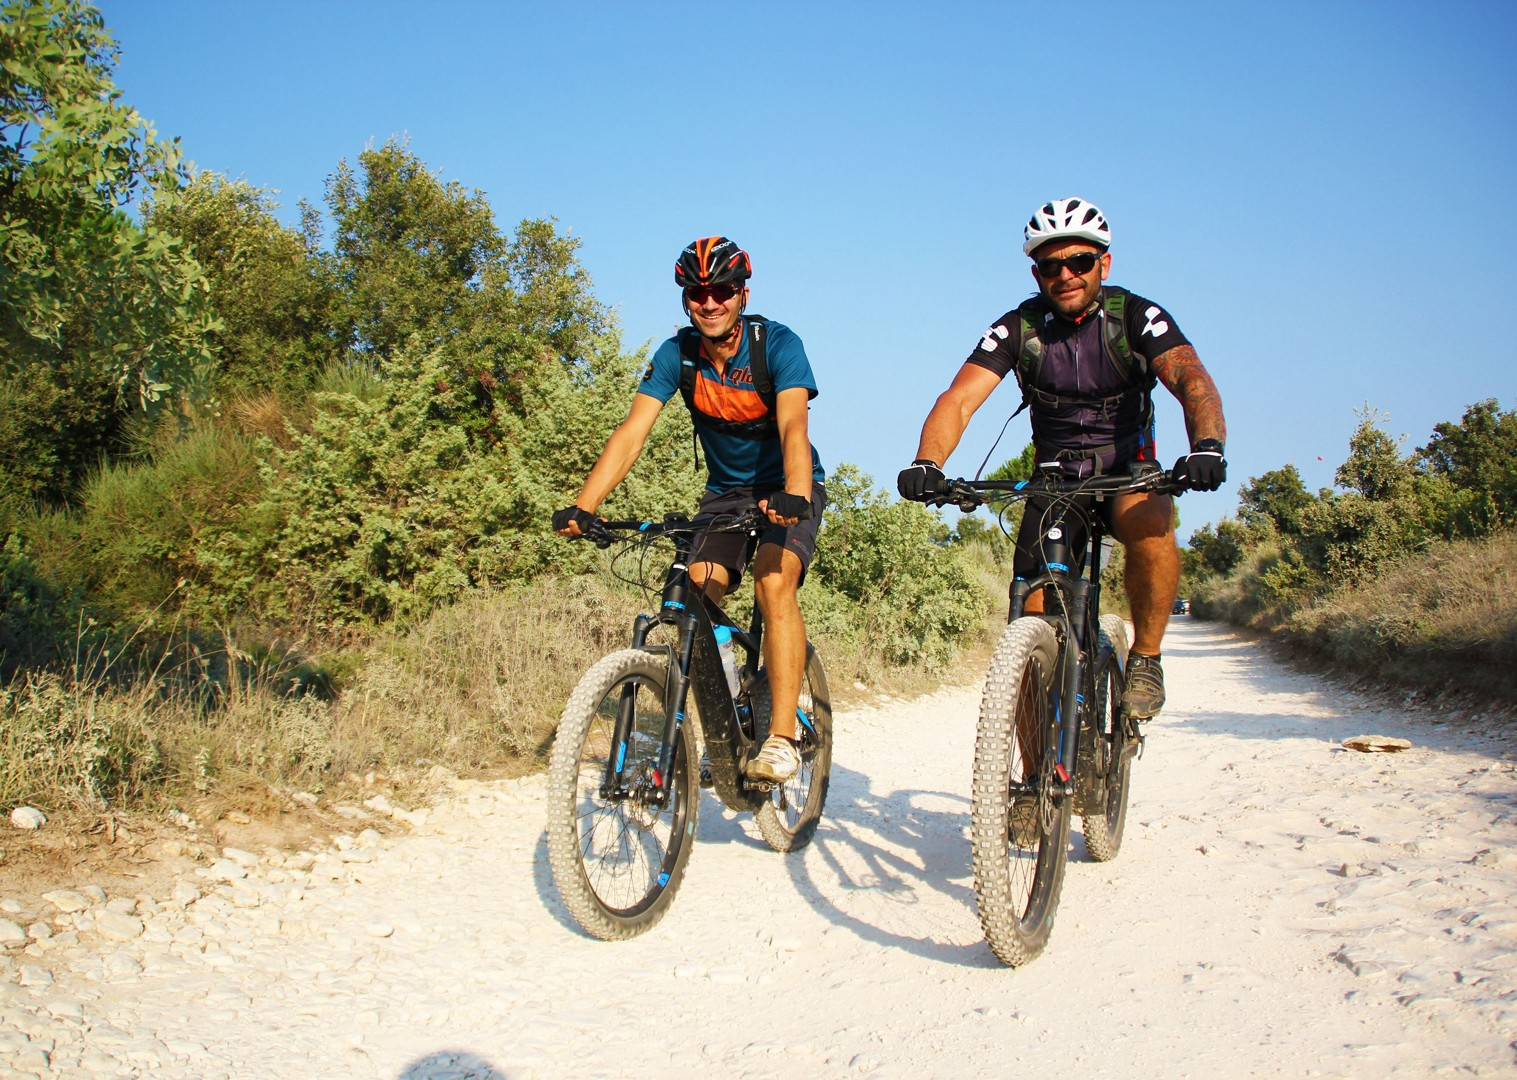 parenzana-saddle-skedaddle-electric-mountain-biking-holiday-croatia-terra-magica.jpg - NEW! Croatia - Terra Magica - eMTB - Mountain Biking